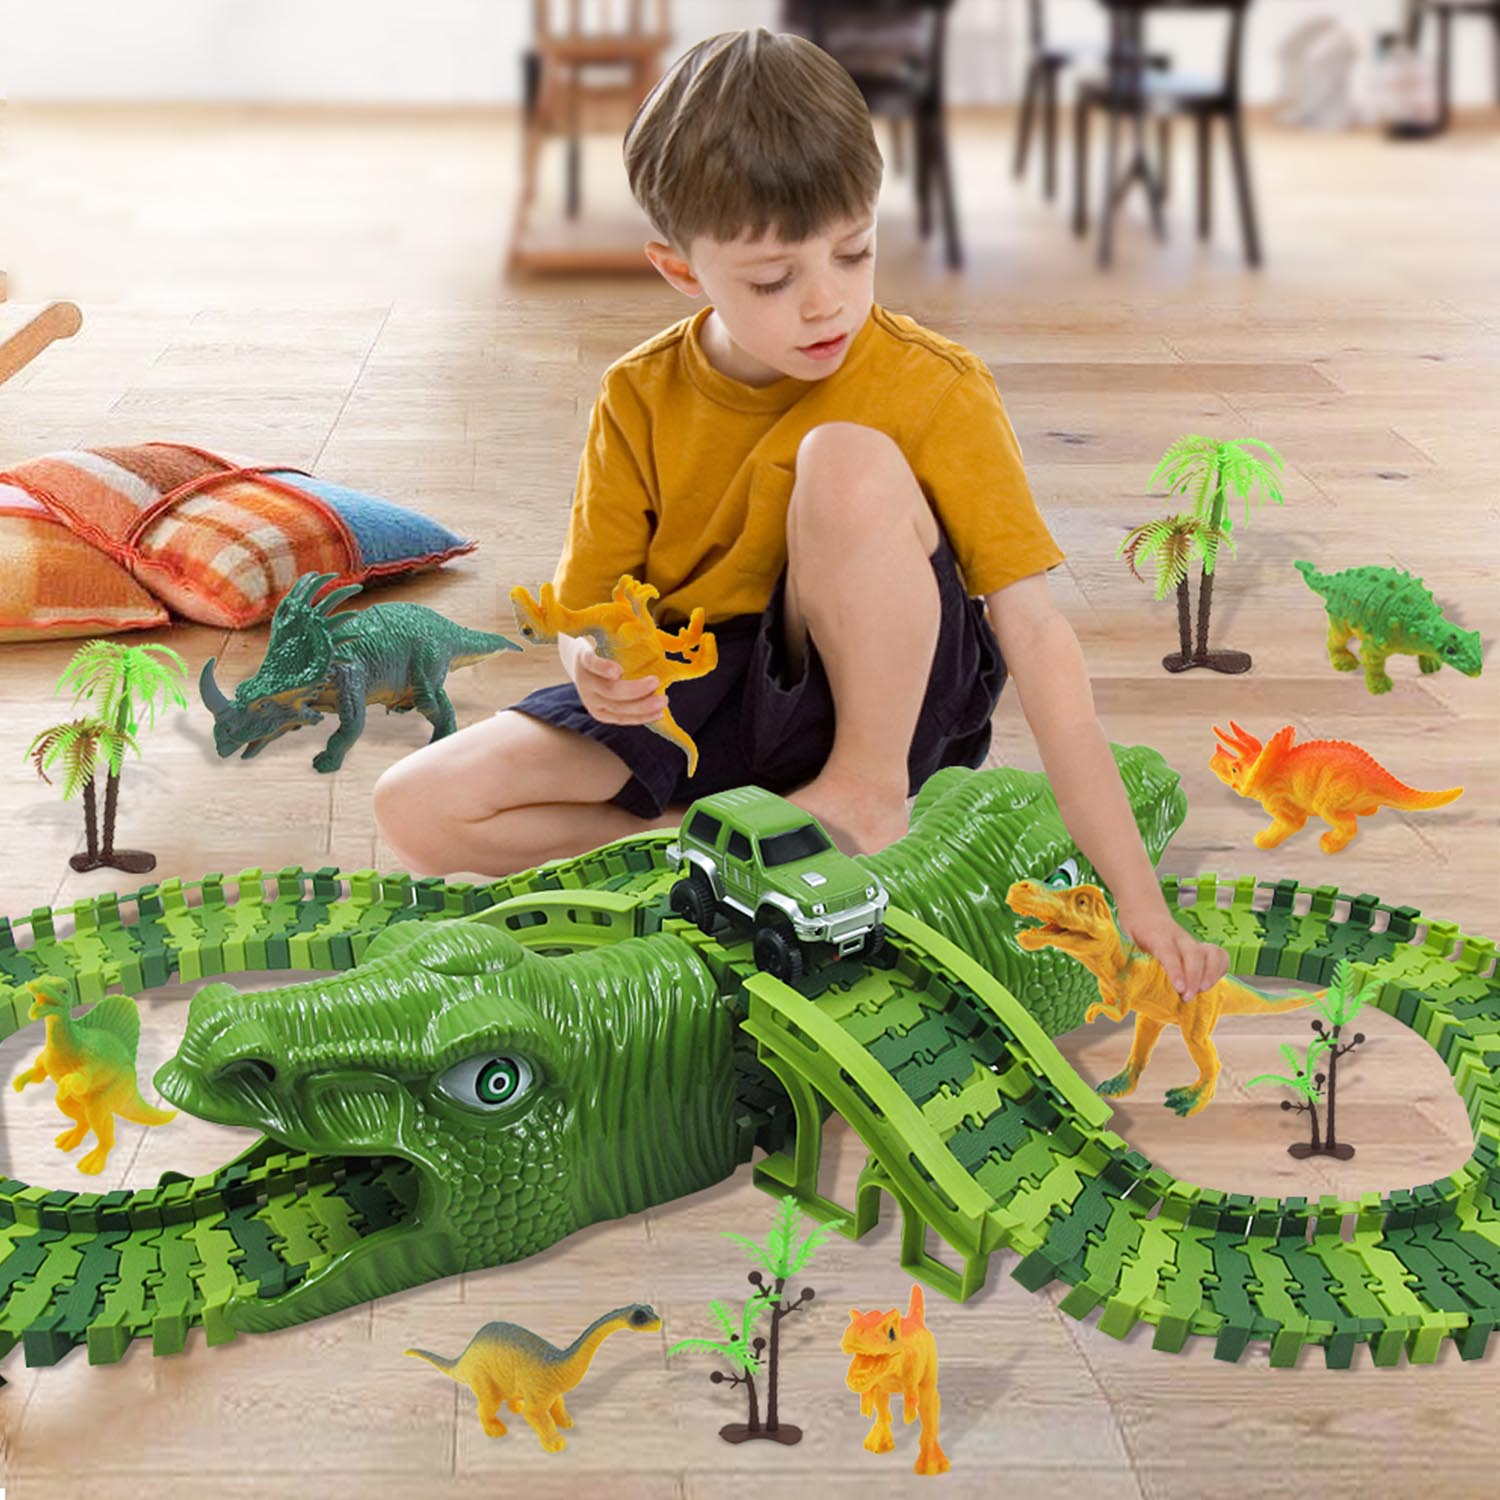 153PCS Kids DIY Assemble Jurassic Dinosaur Race Track Set Magical Flexible Racing Train Electric Race Car Dinosaur Model Toy